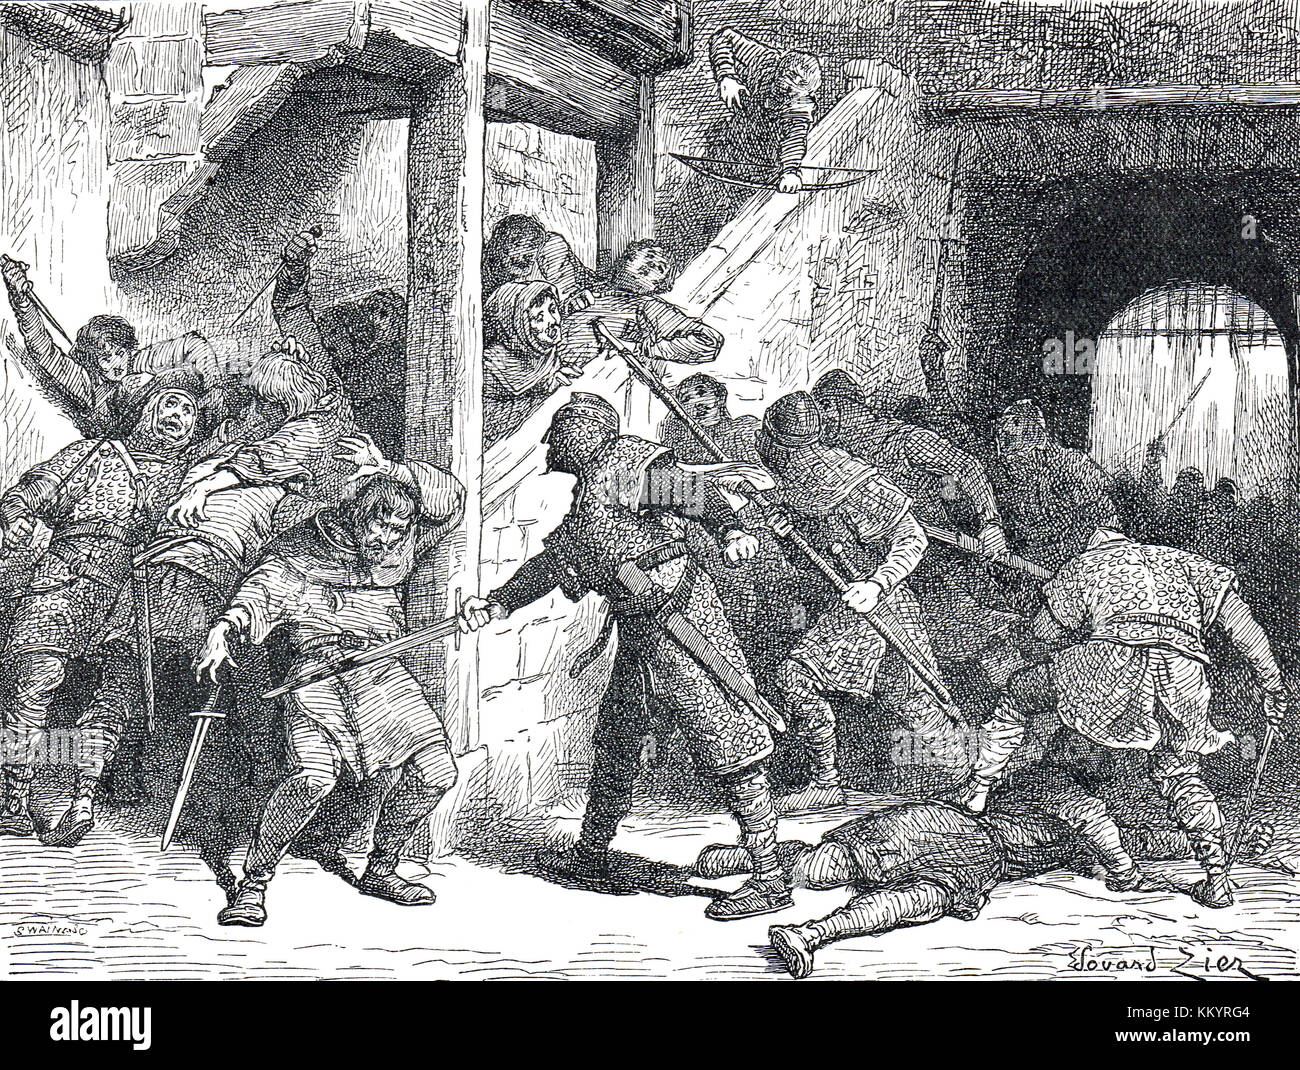 Riot at Dover, September 1051, violent clash between English and Normans - Stock Image